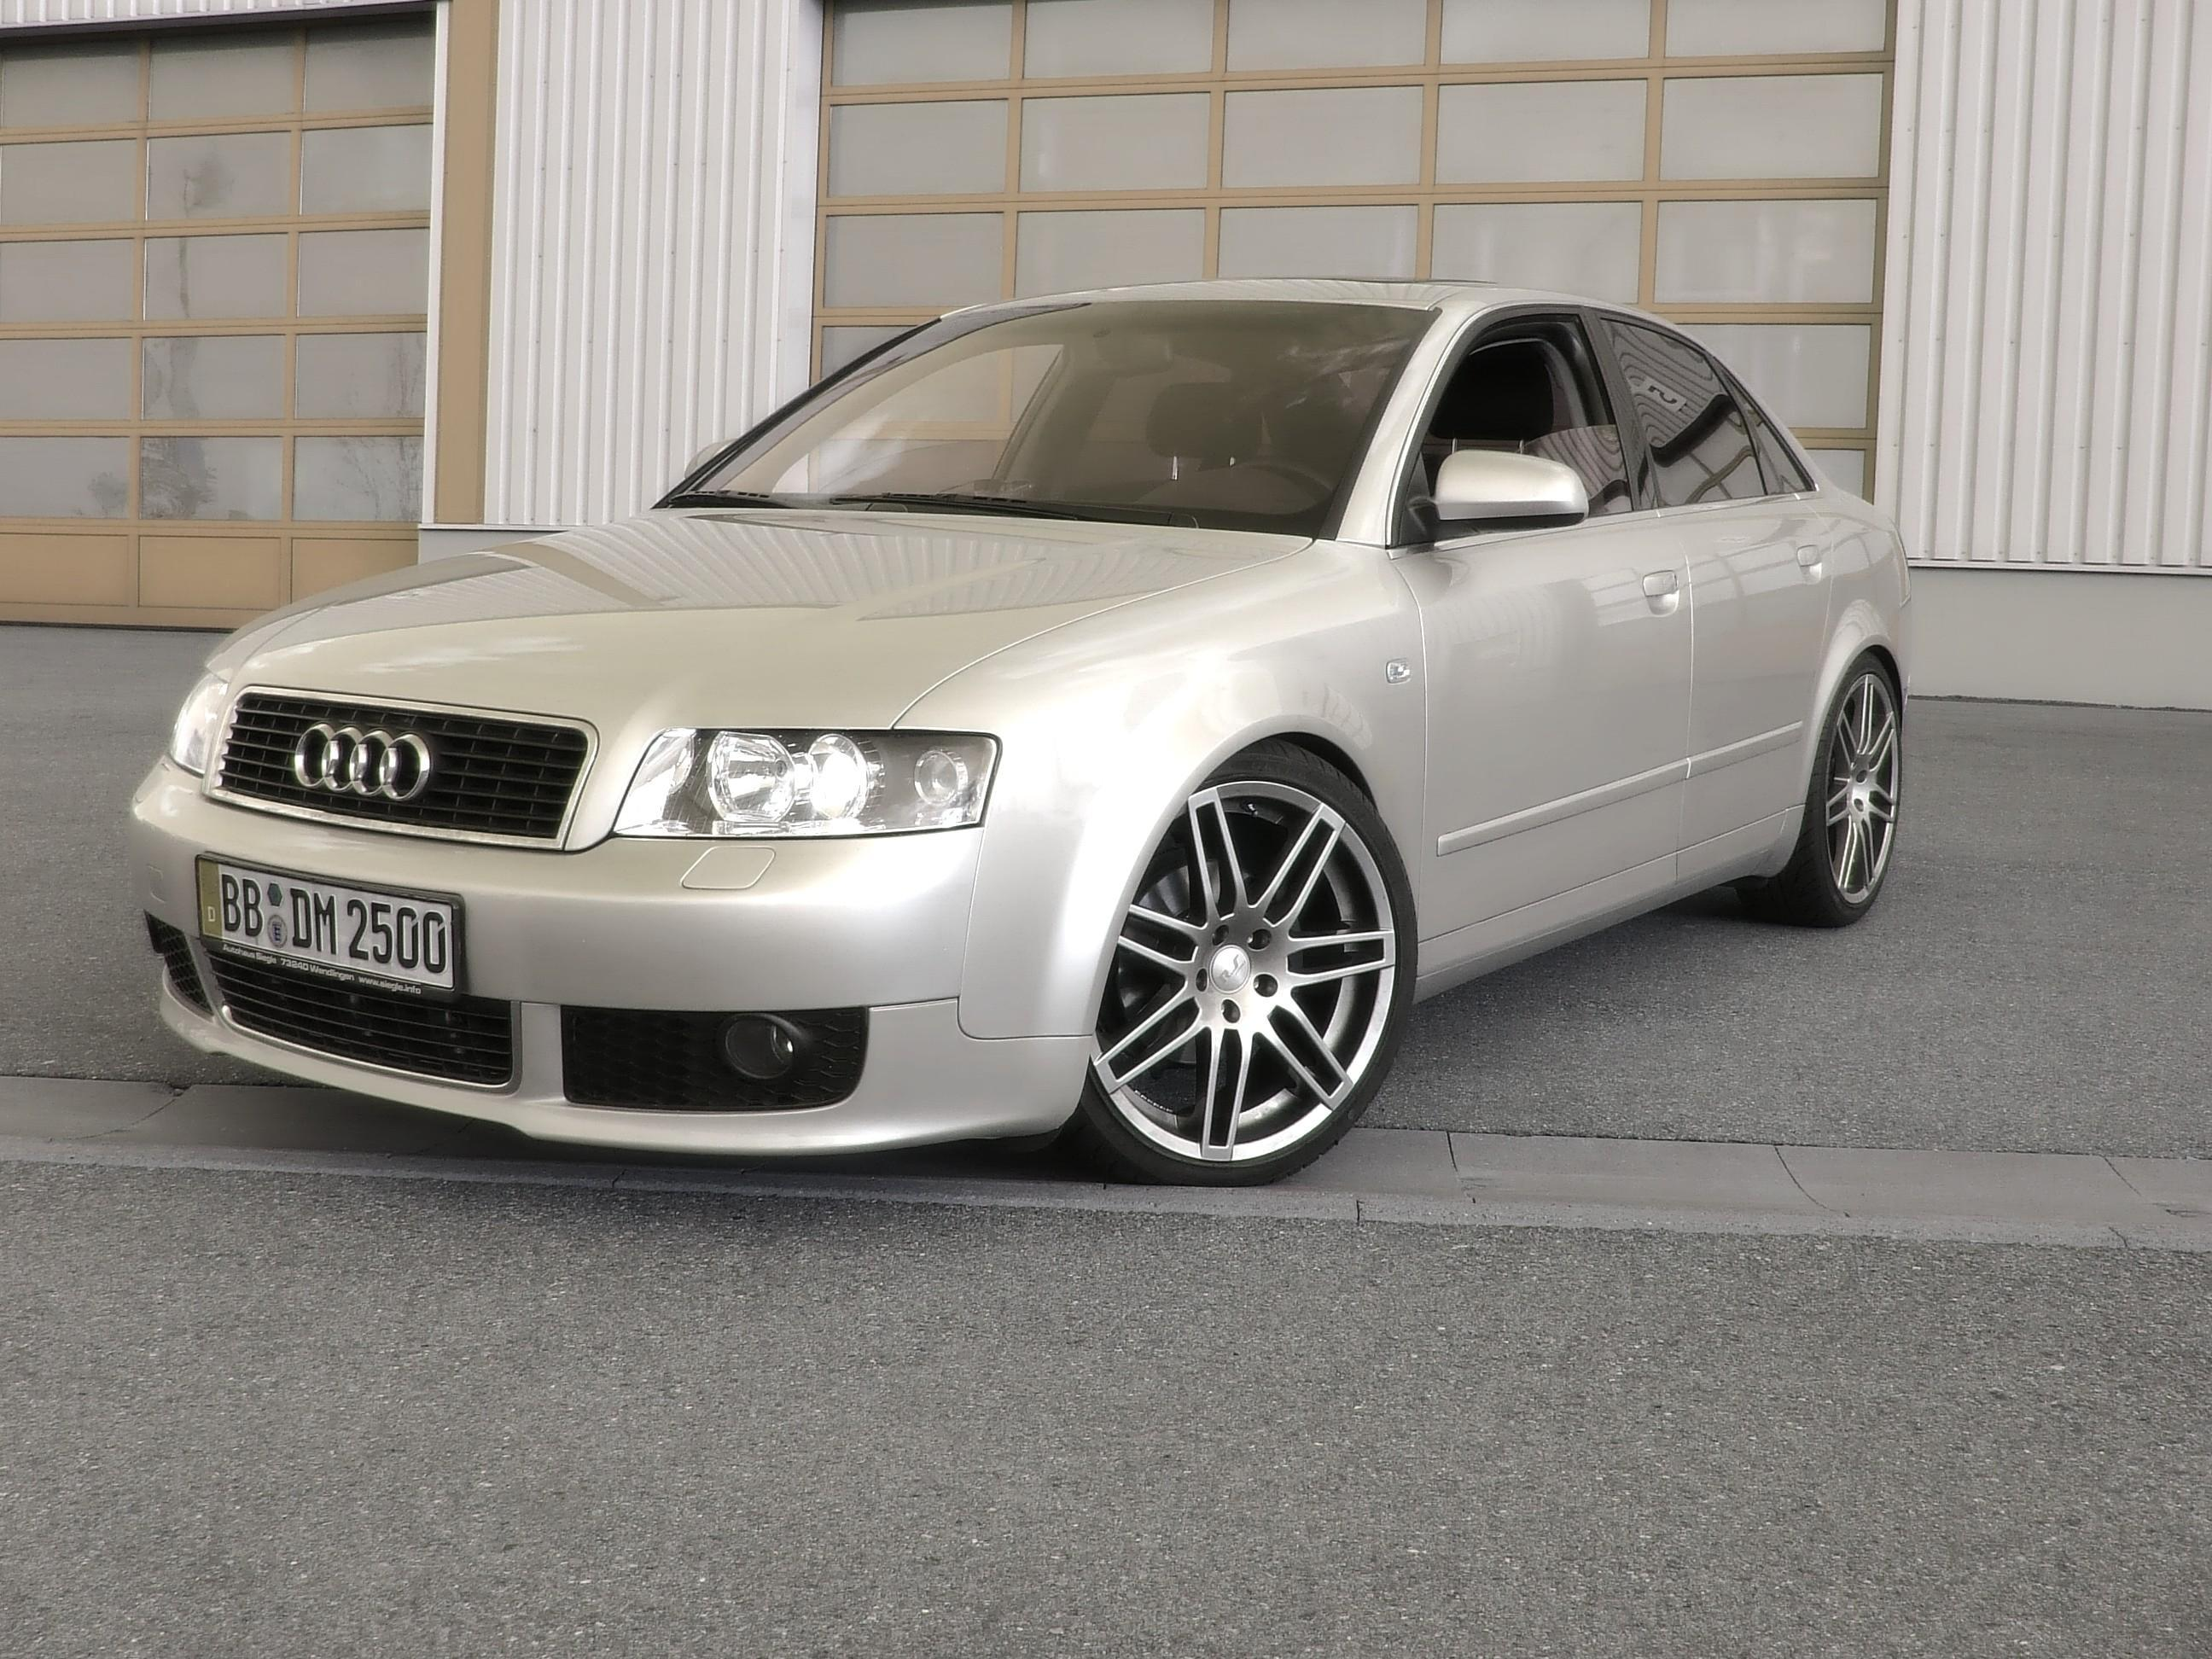 mitka 2001 audi a4 specs photos modification info at cardomain. Black Bedroom Furniture Sets. Home Design Ideas